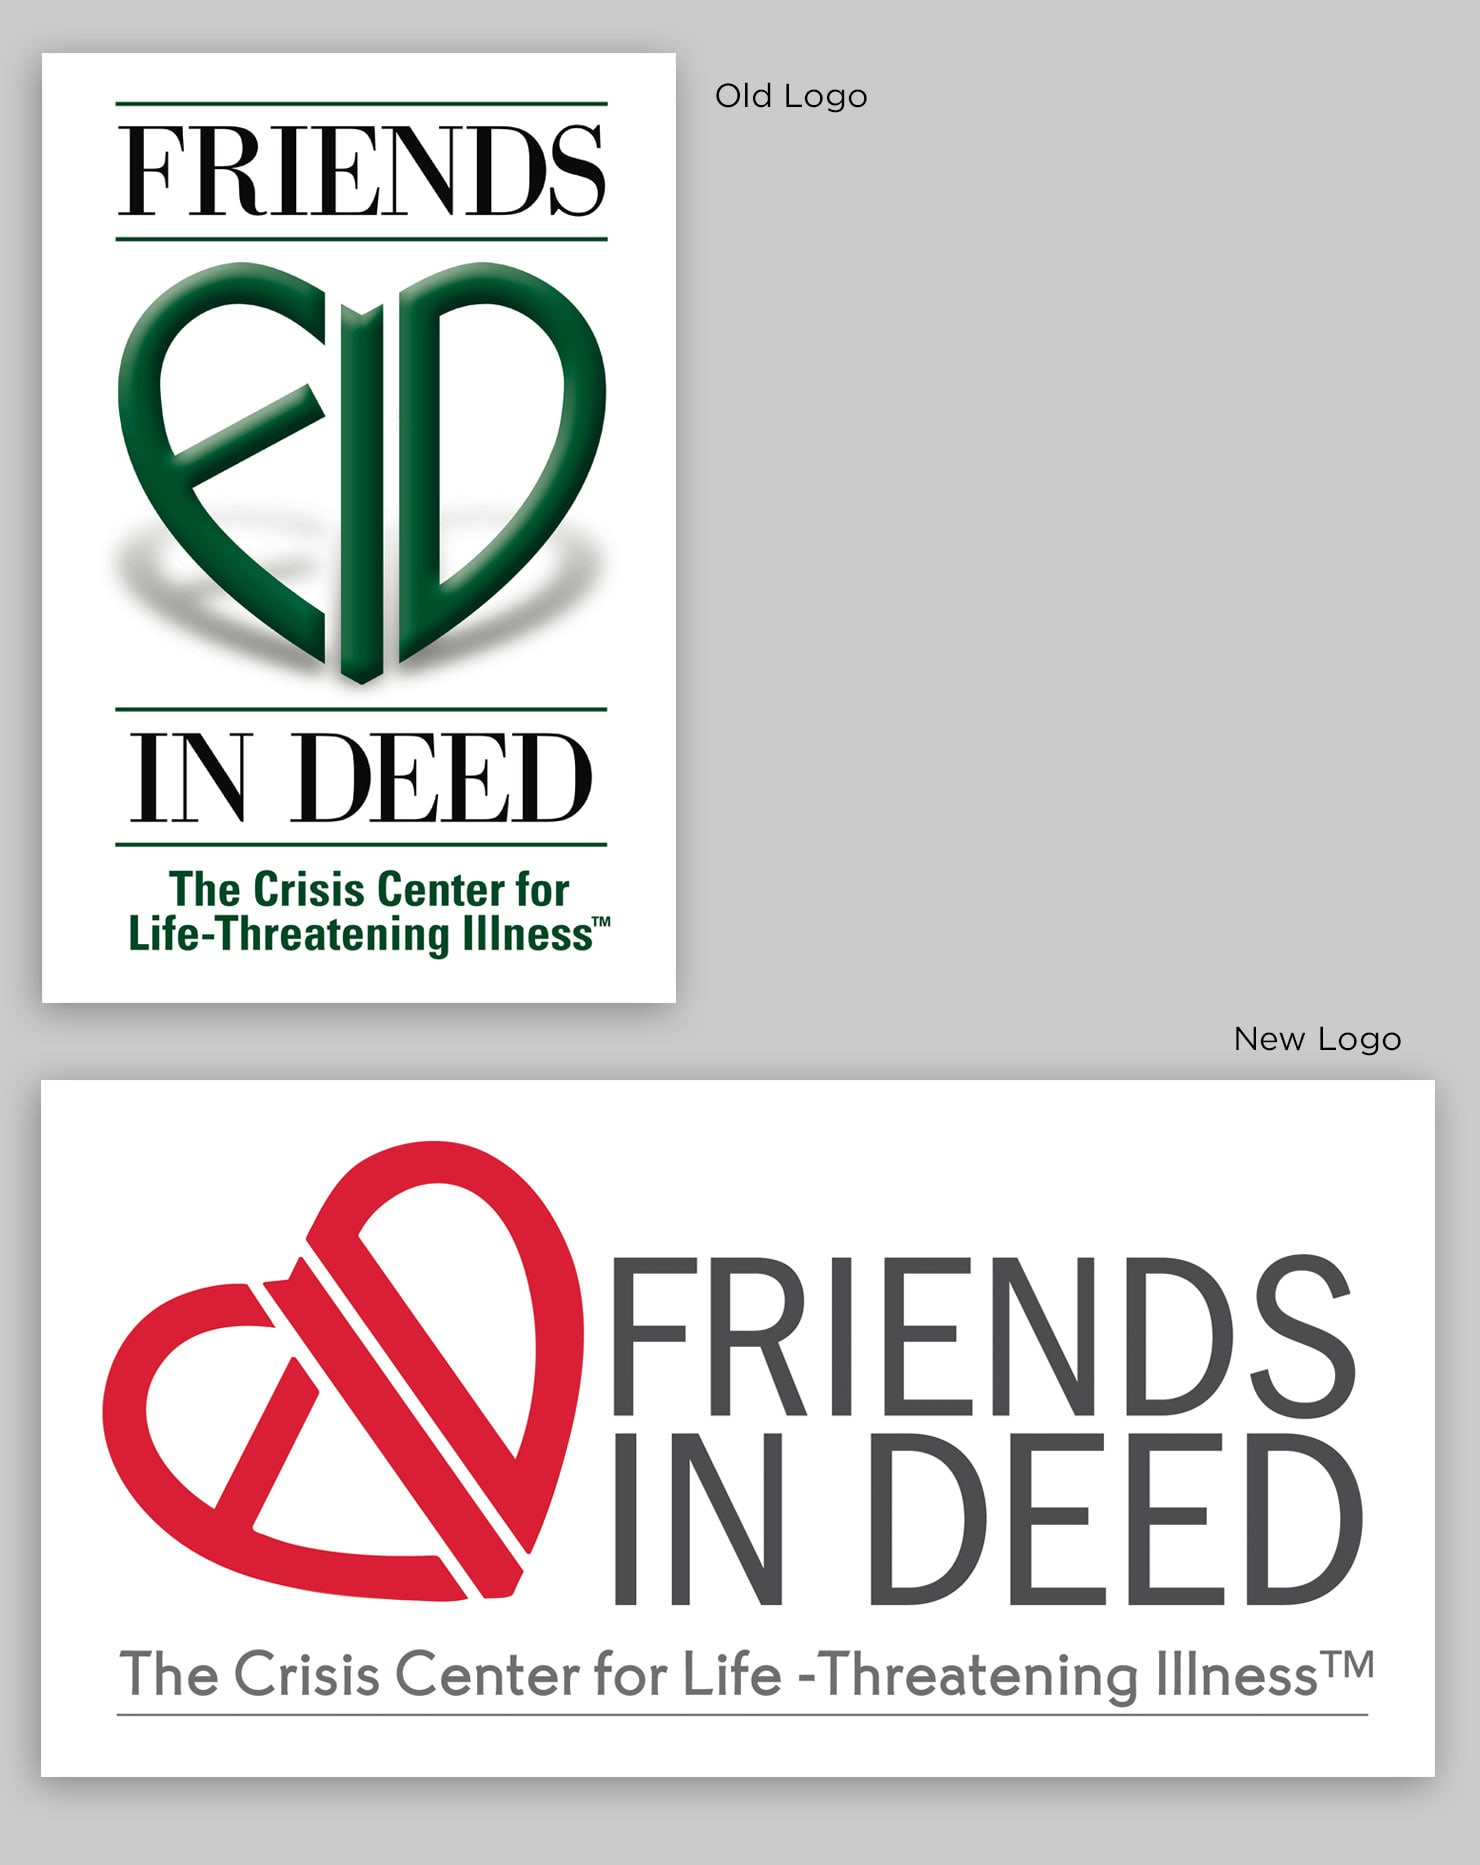 Friends in Deed Branding and Marketing